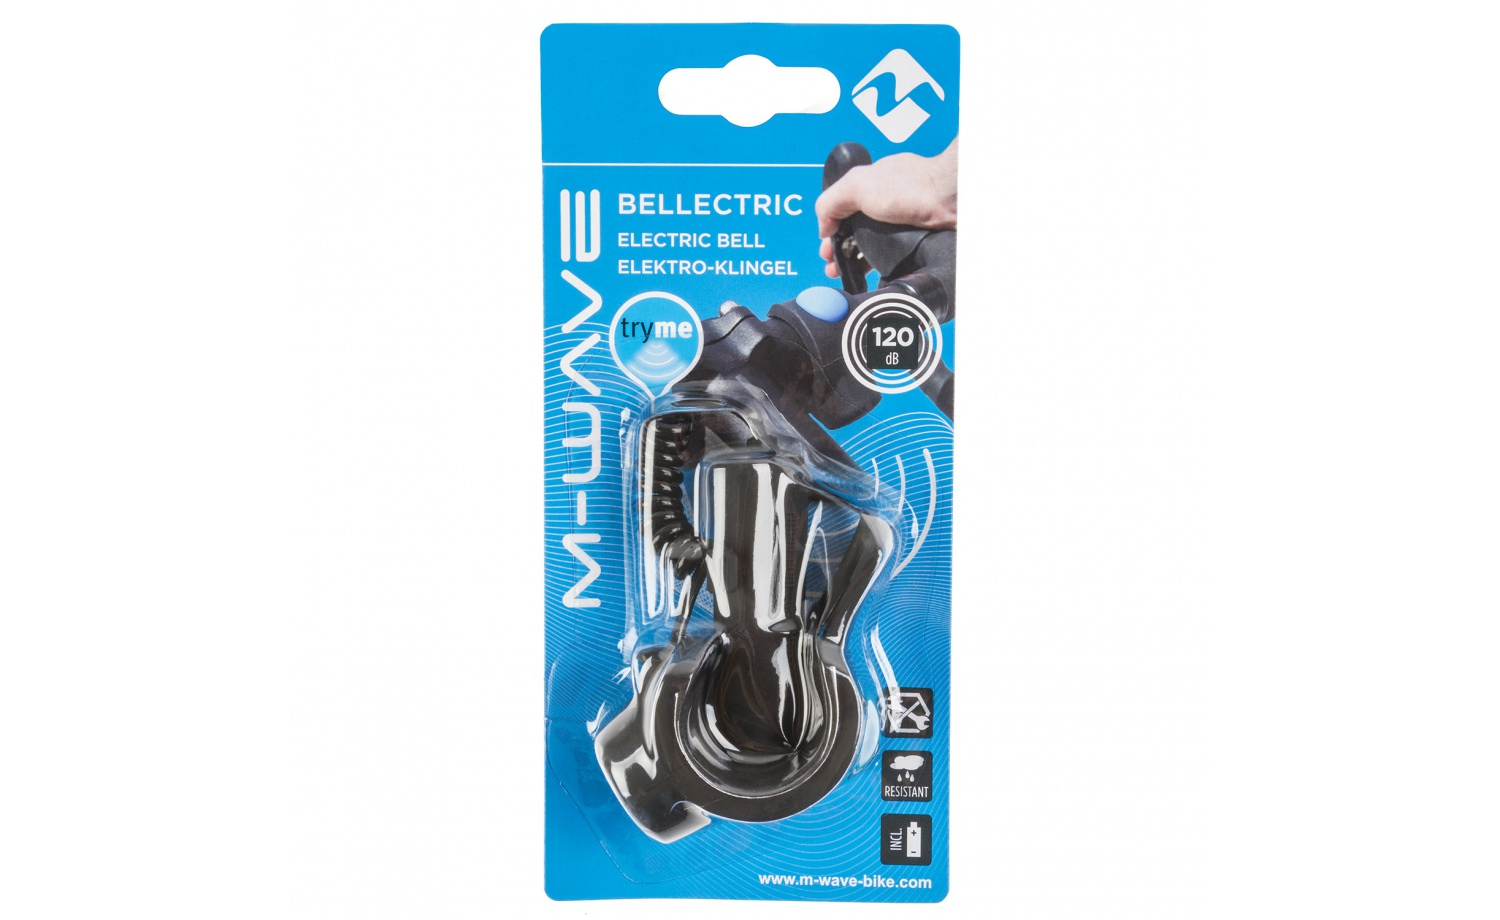 M-WAVE Bellectric electro bicycle bell